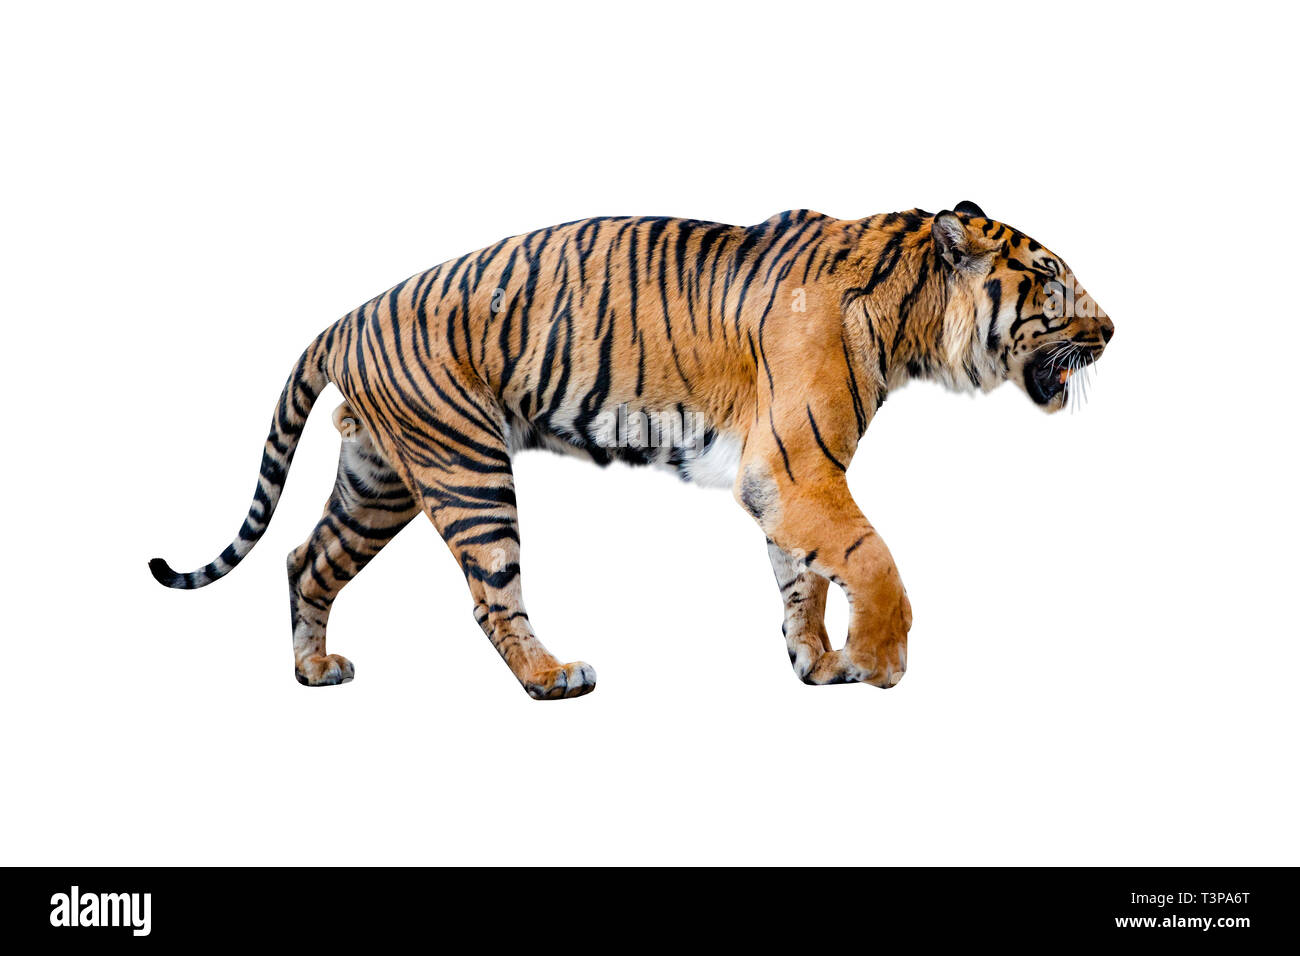 Close uo of tiger isolated on the White background. - Stock Image